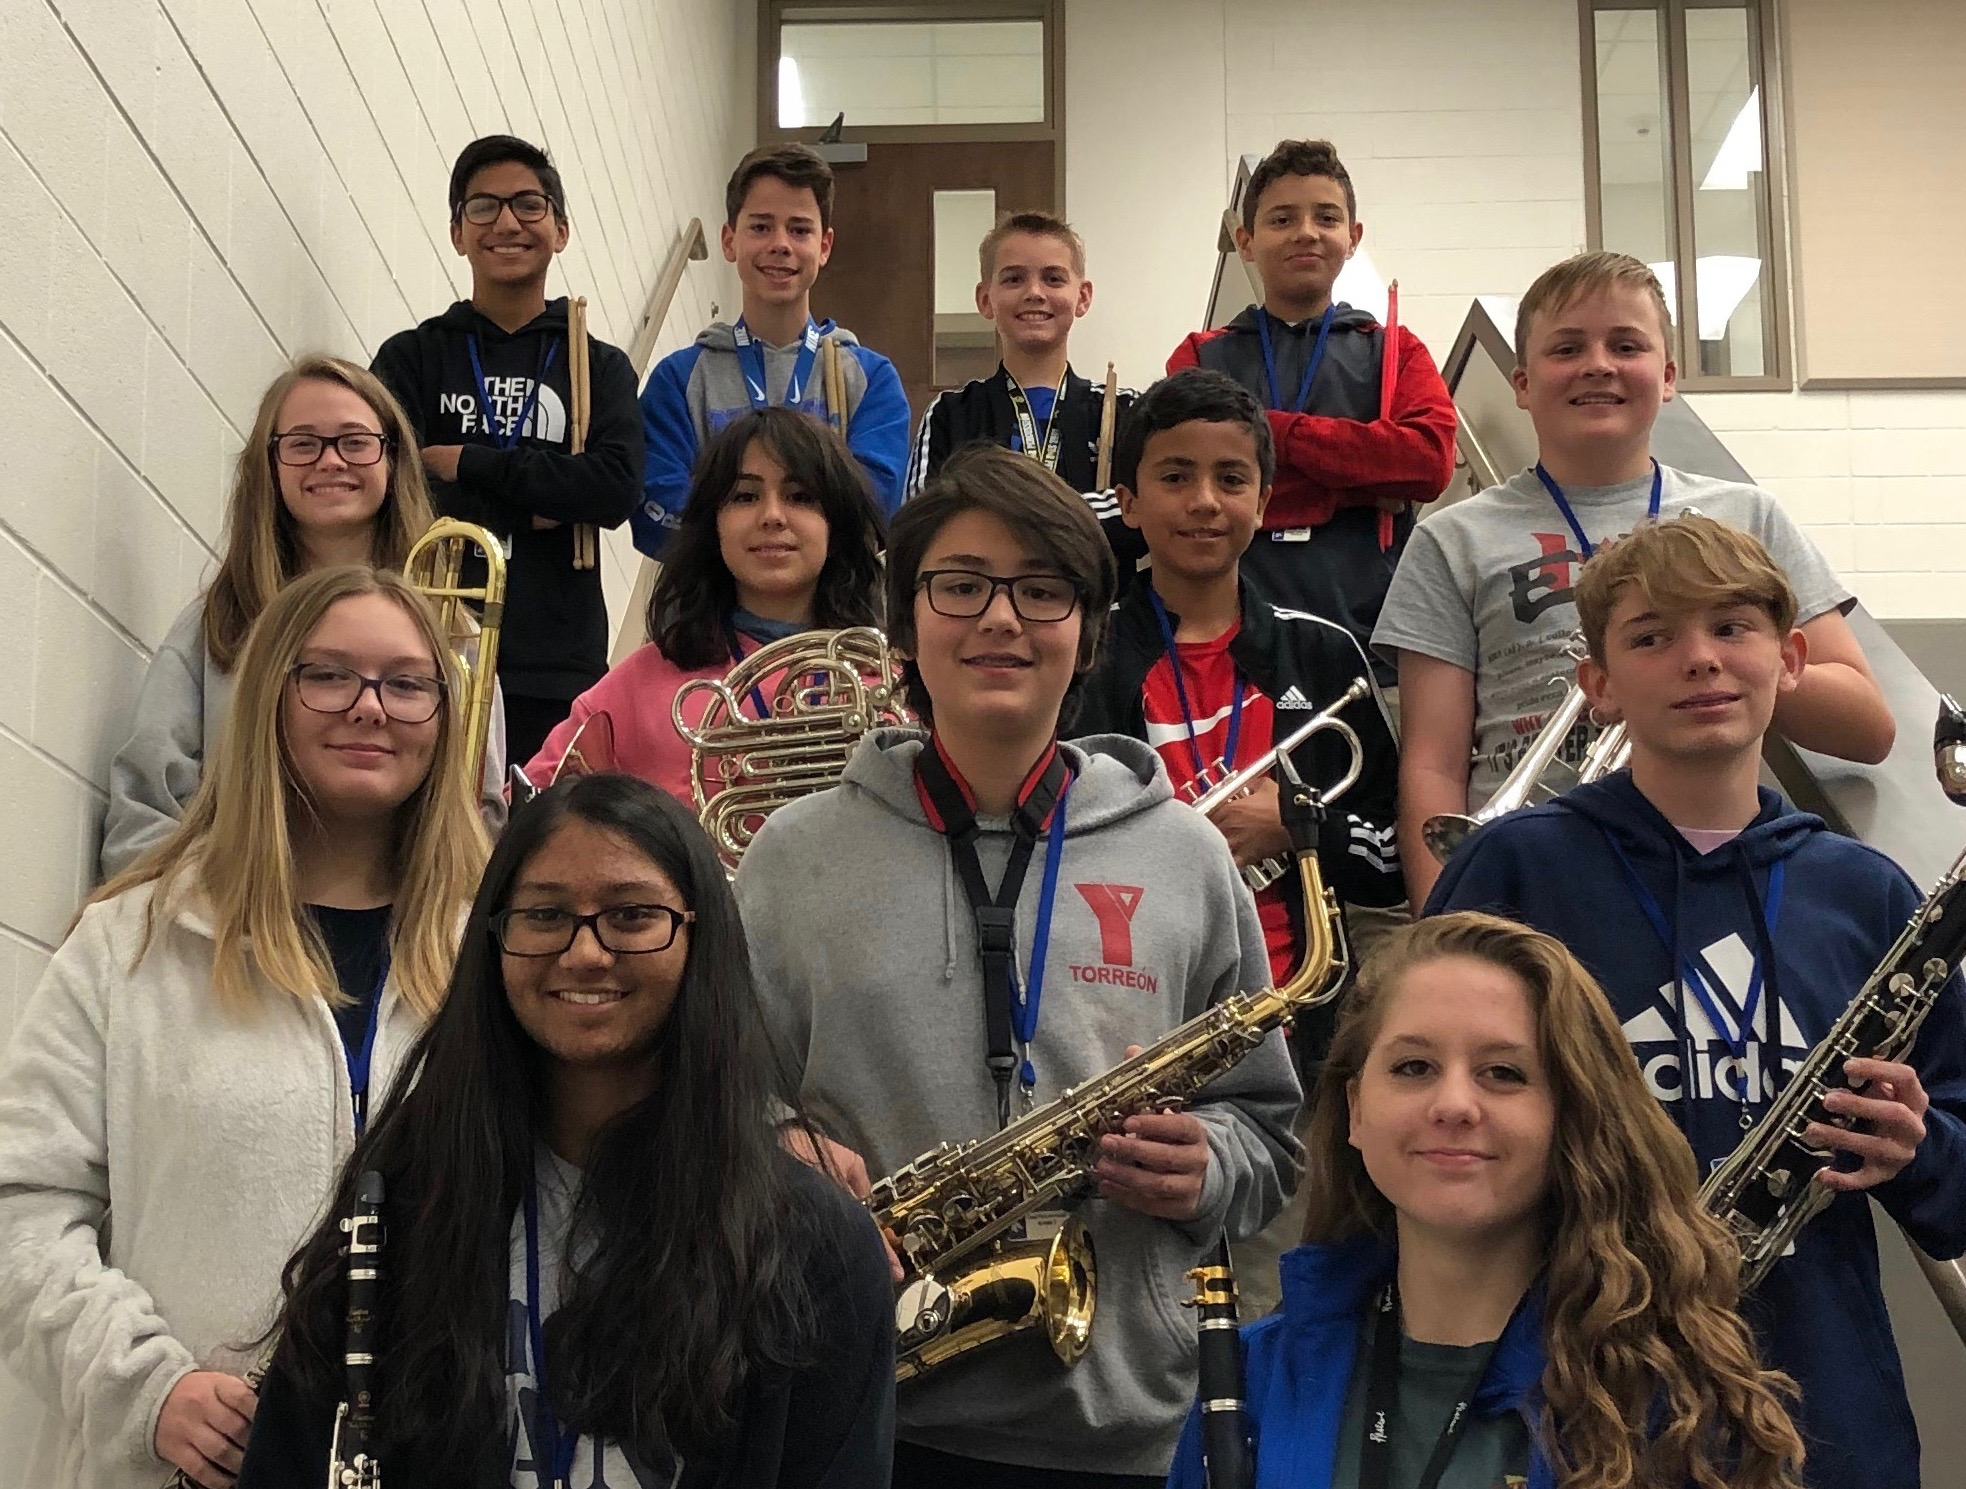 NBMS students named to region, district honors bands in November 2018